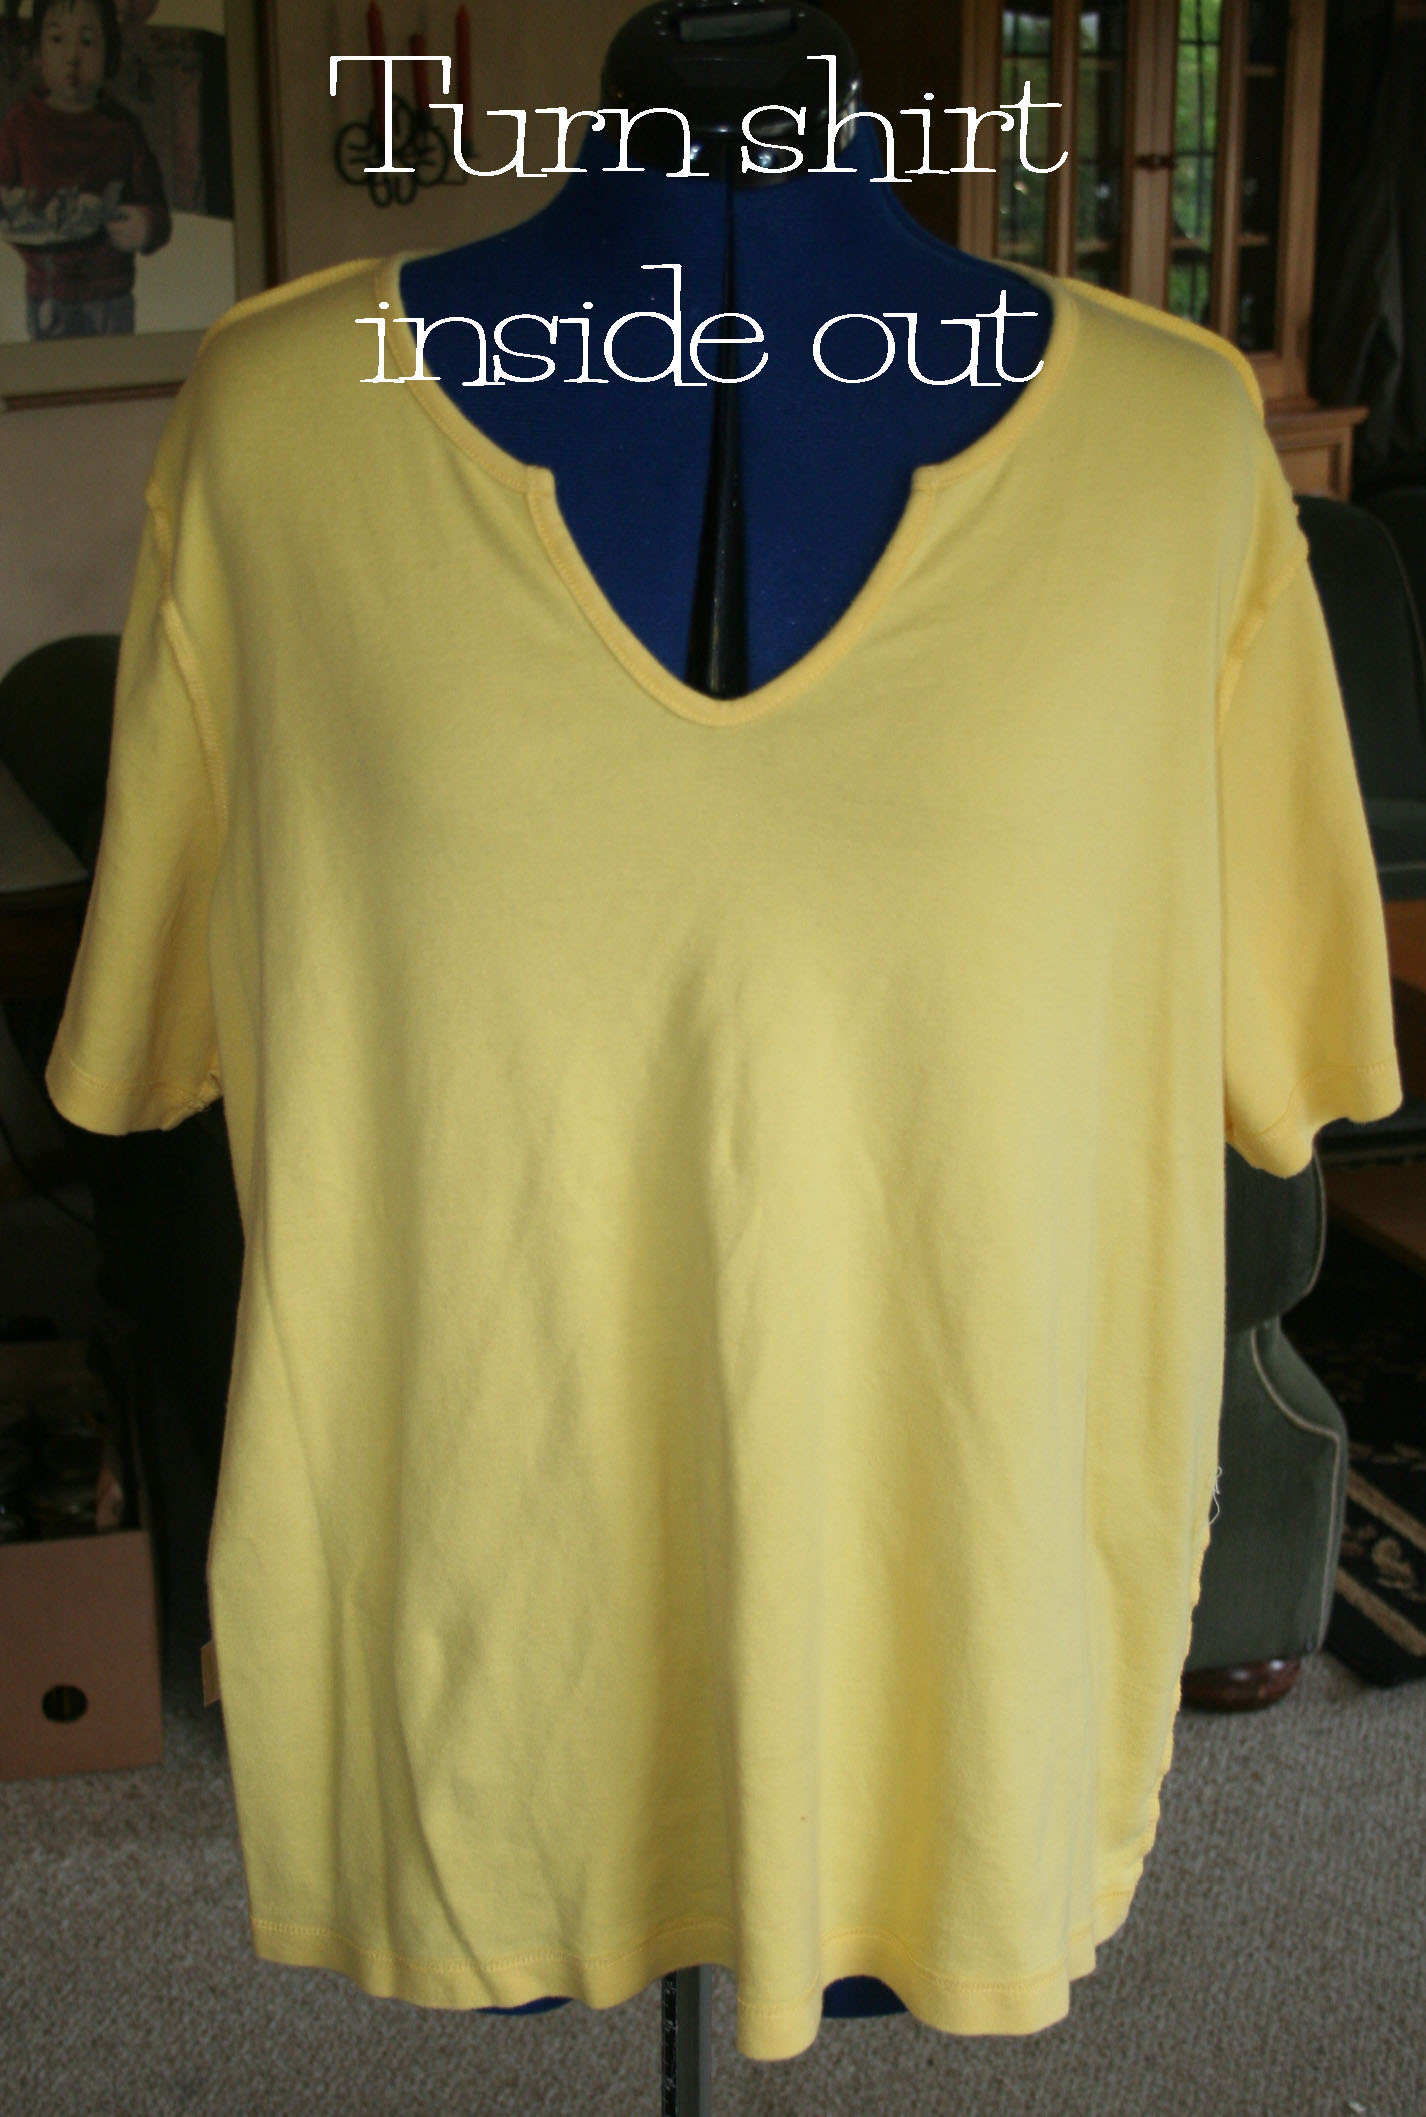 Diy bleach pen t shirt design the renegade seamstress for How to bleach designs into shirts